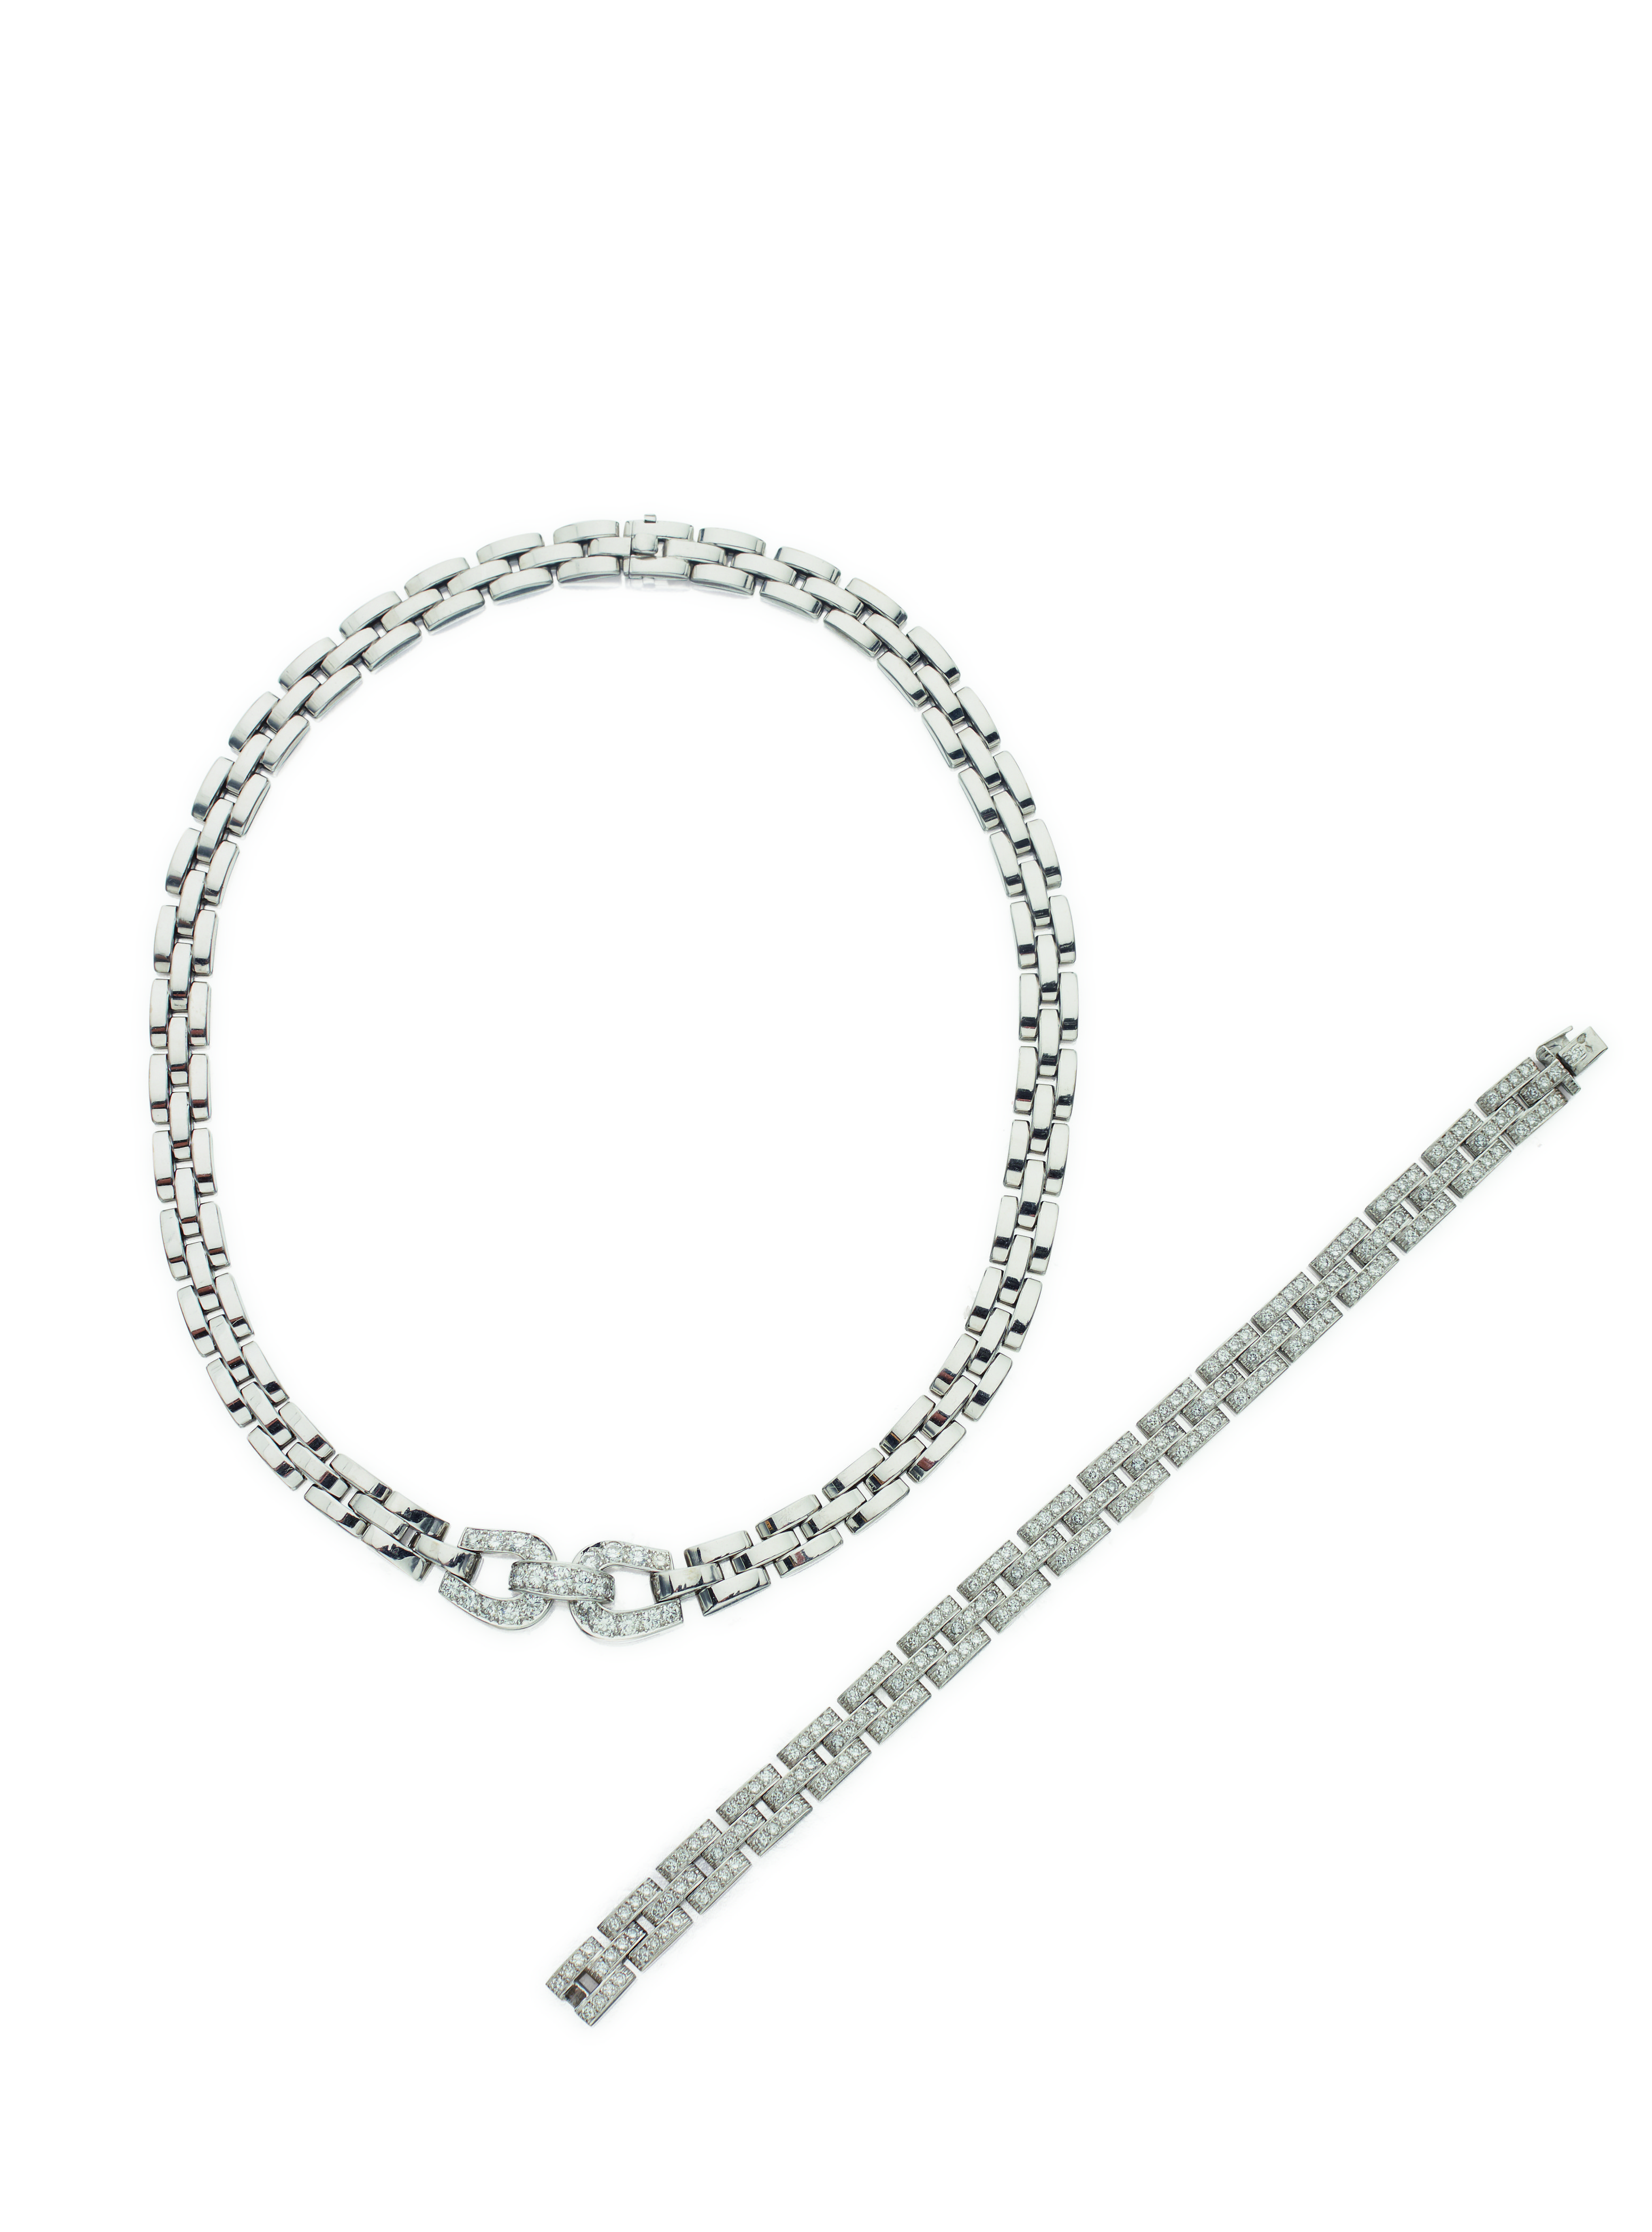 View 1 of Lot 22. WHITE GOLD AND DIAMOND 'PANTHÈRE' NECKLACE AND BRACELET, CARTIER, FRANCE.